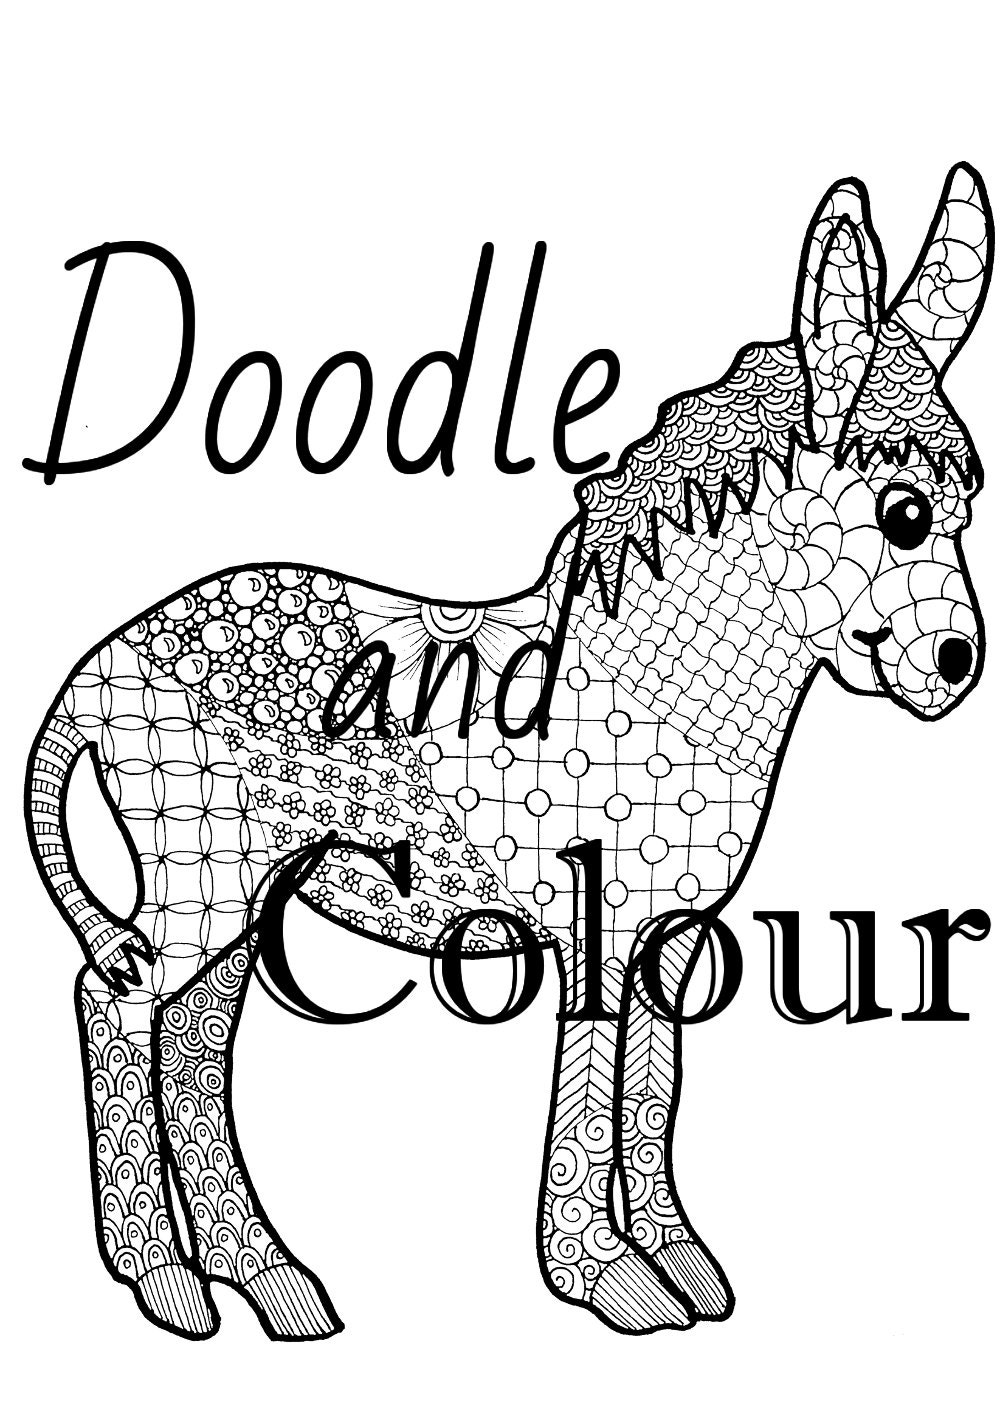 donkey doodle colouring page zentangle style art